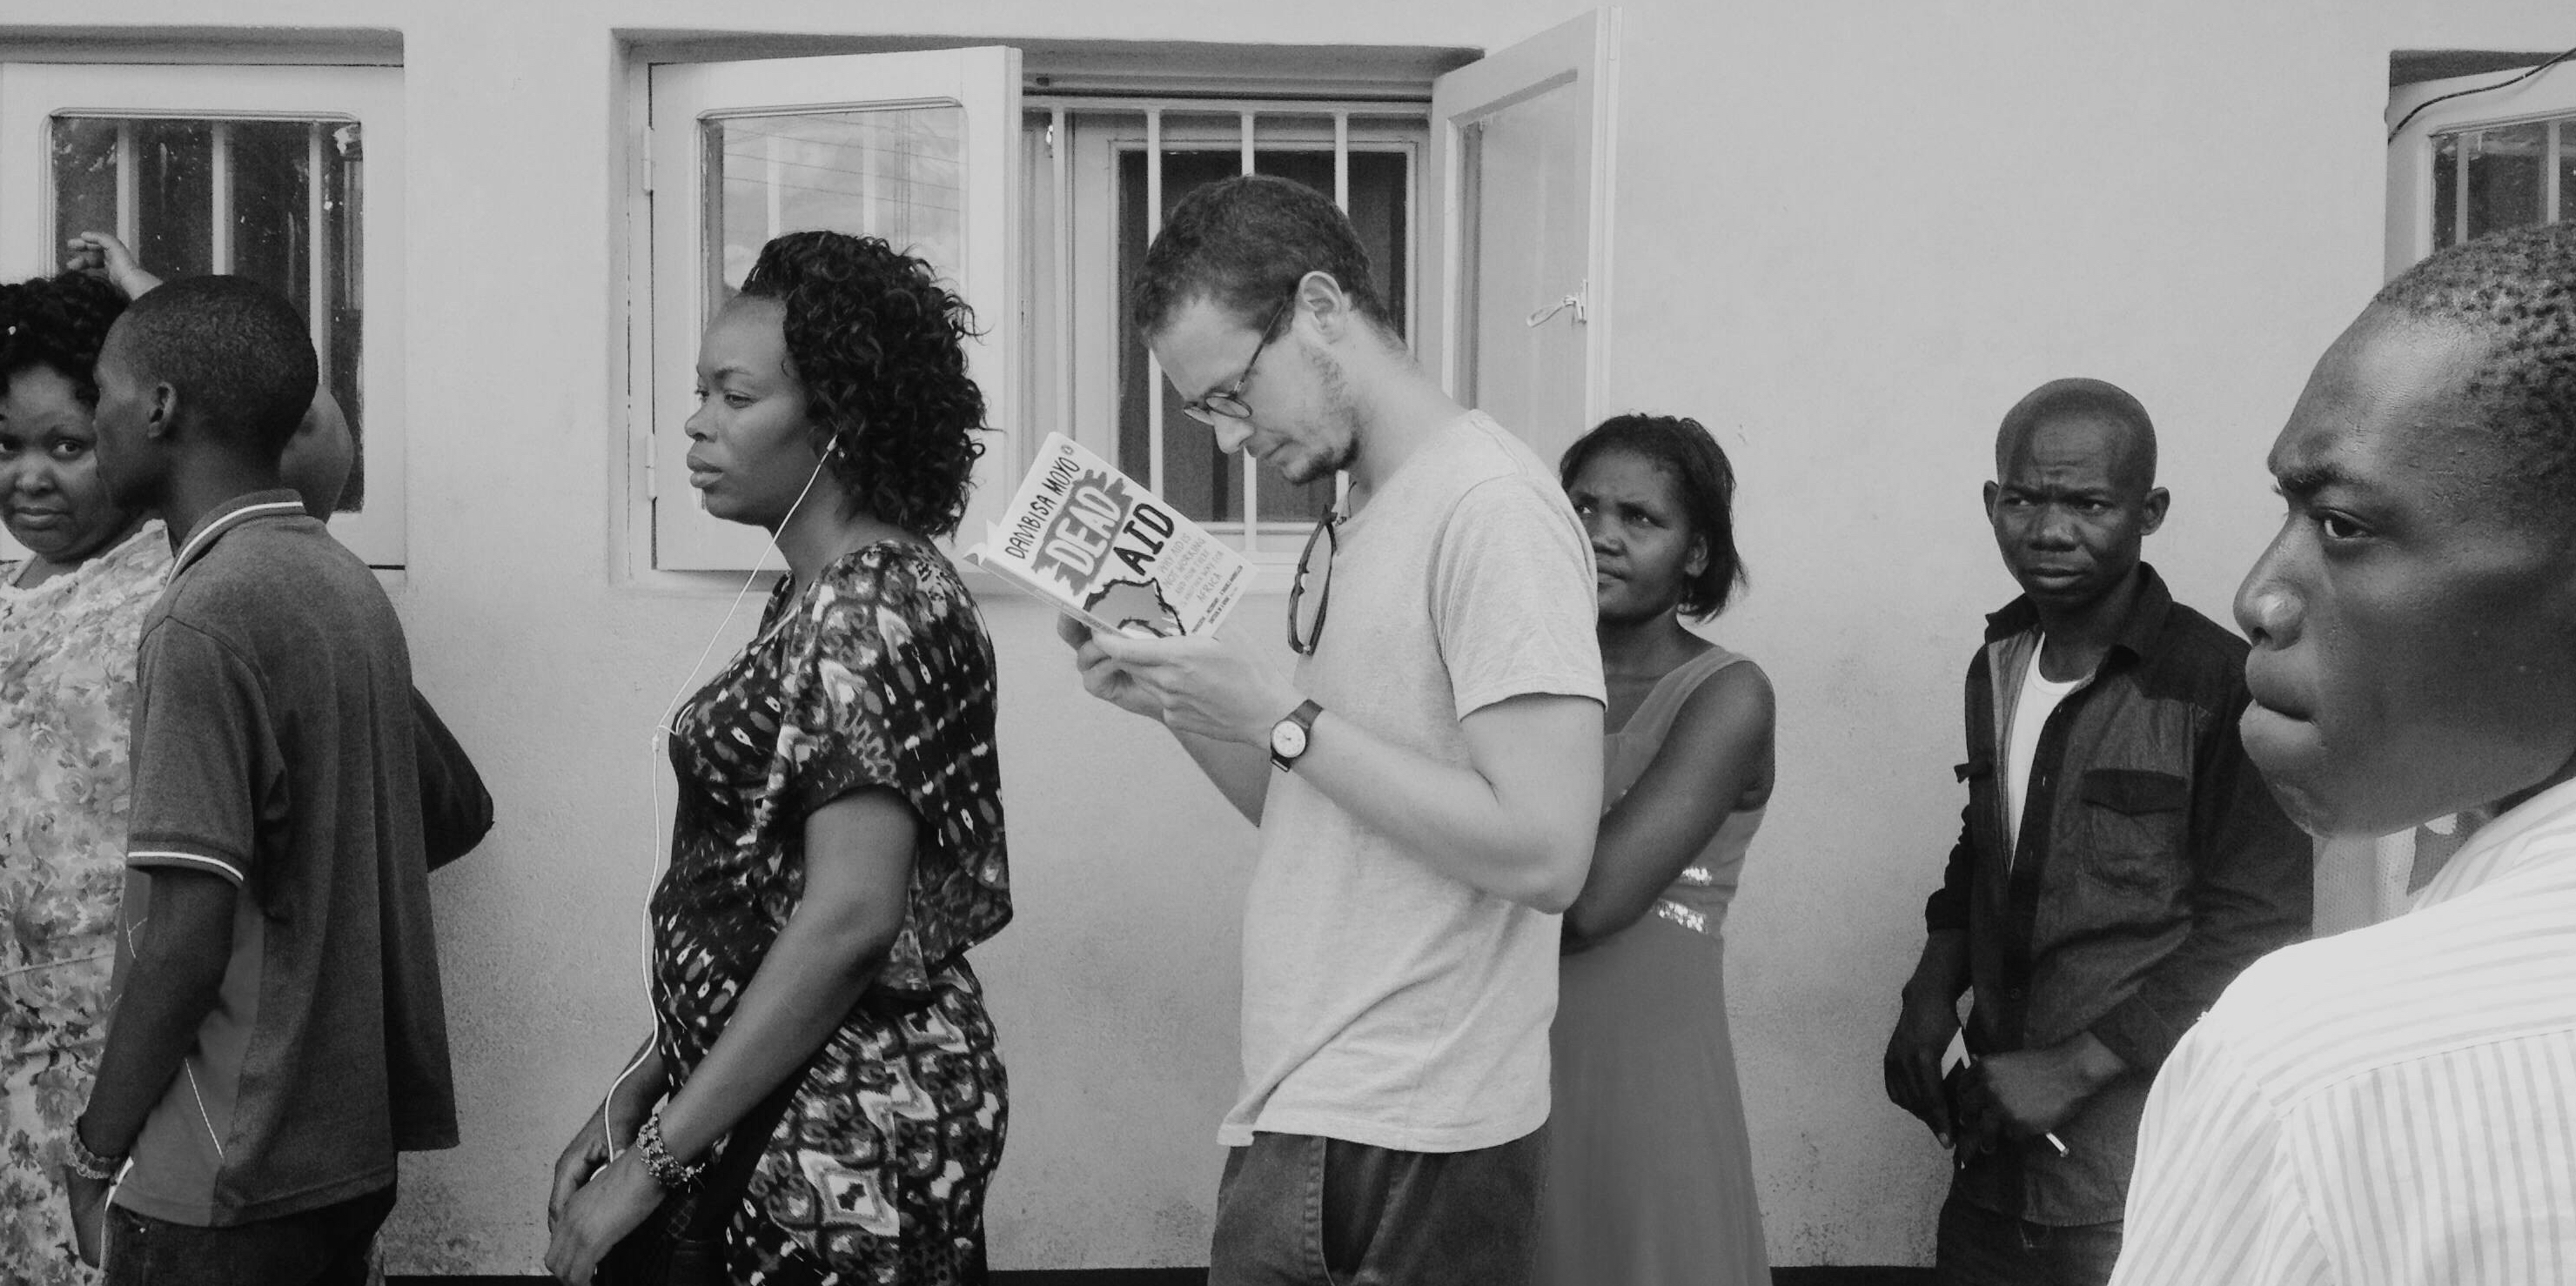 pic of me : alex in malawi border queue bw.png